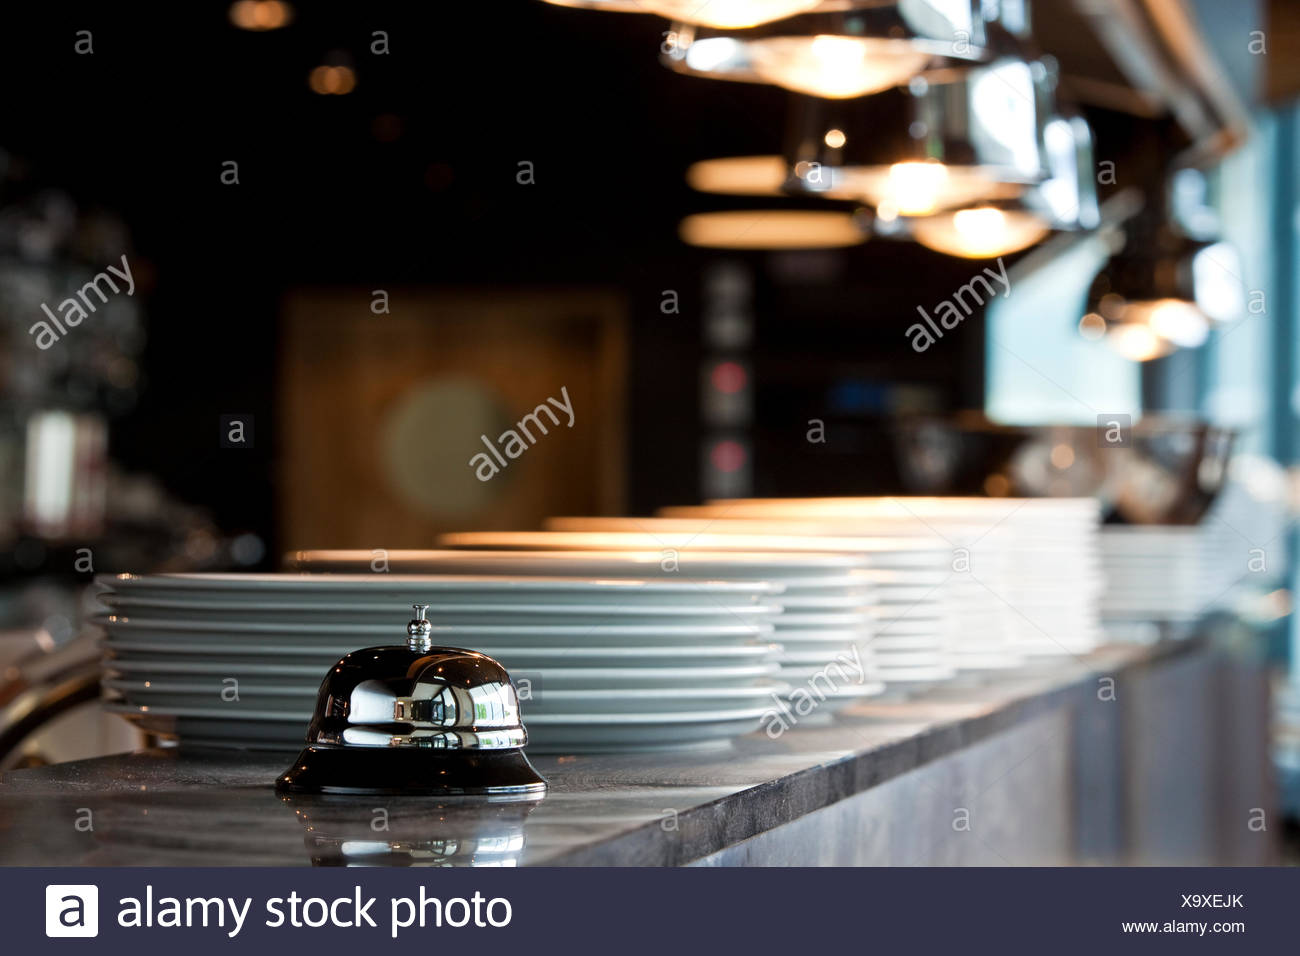 Bell on the food counter of a restaurant - Stock Image